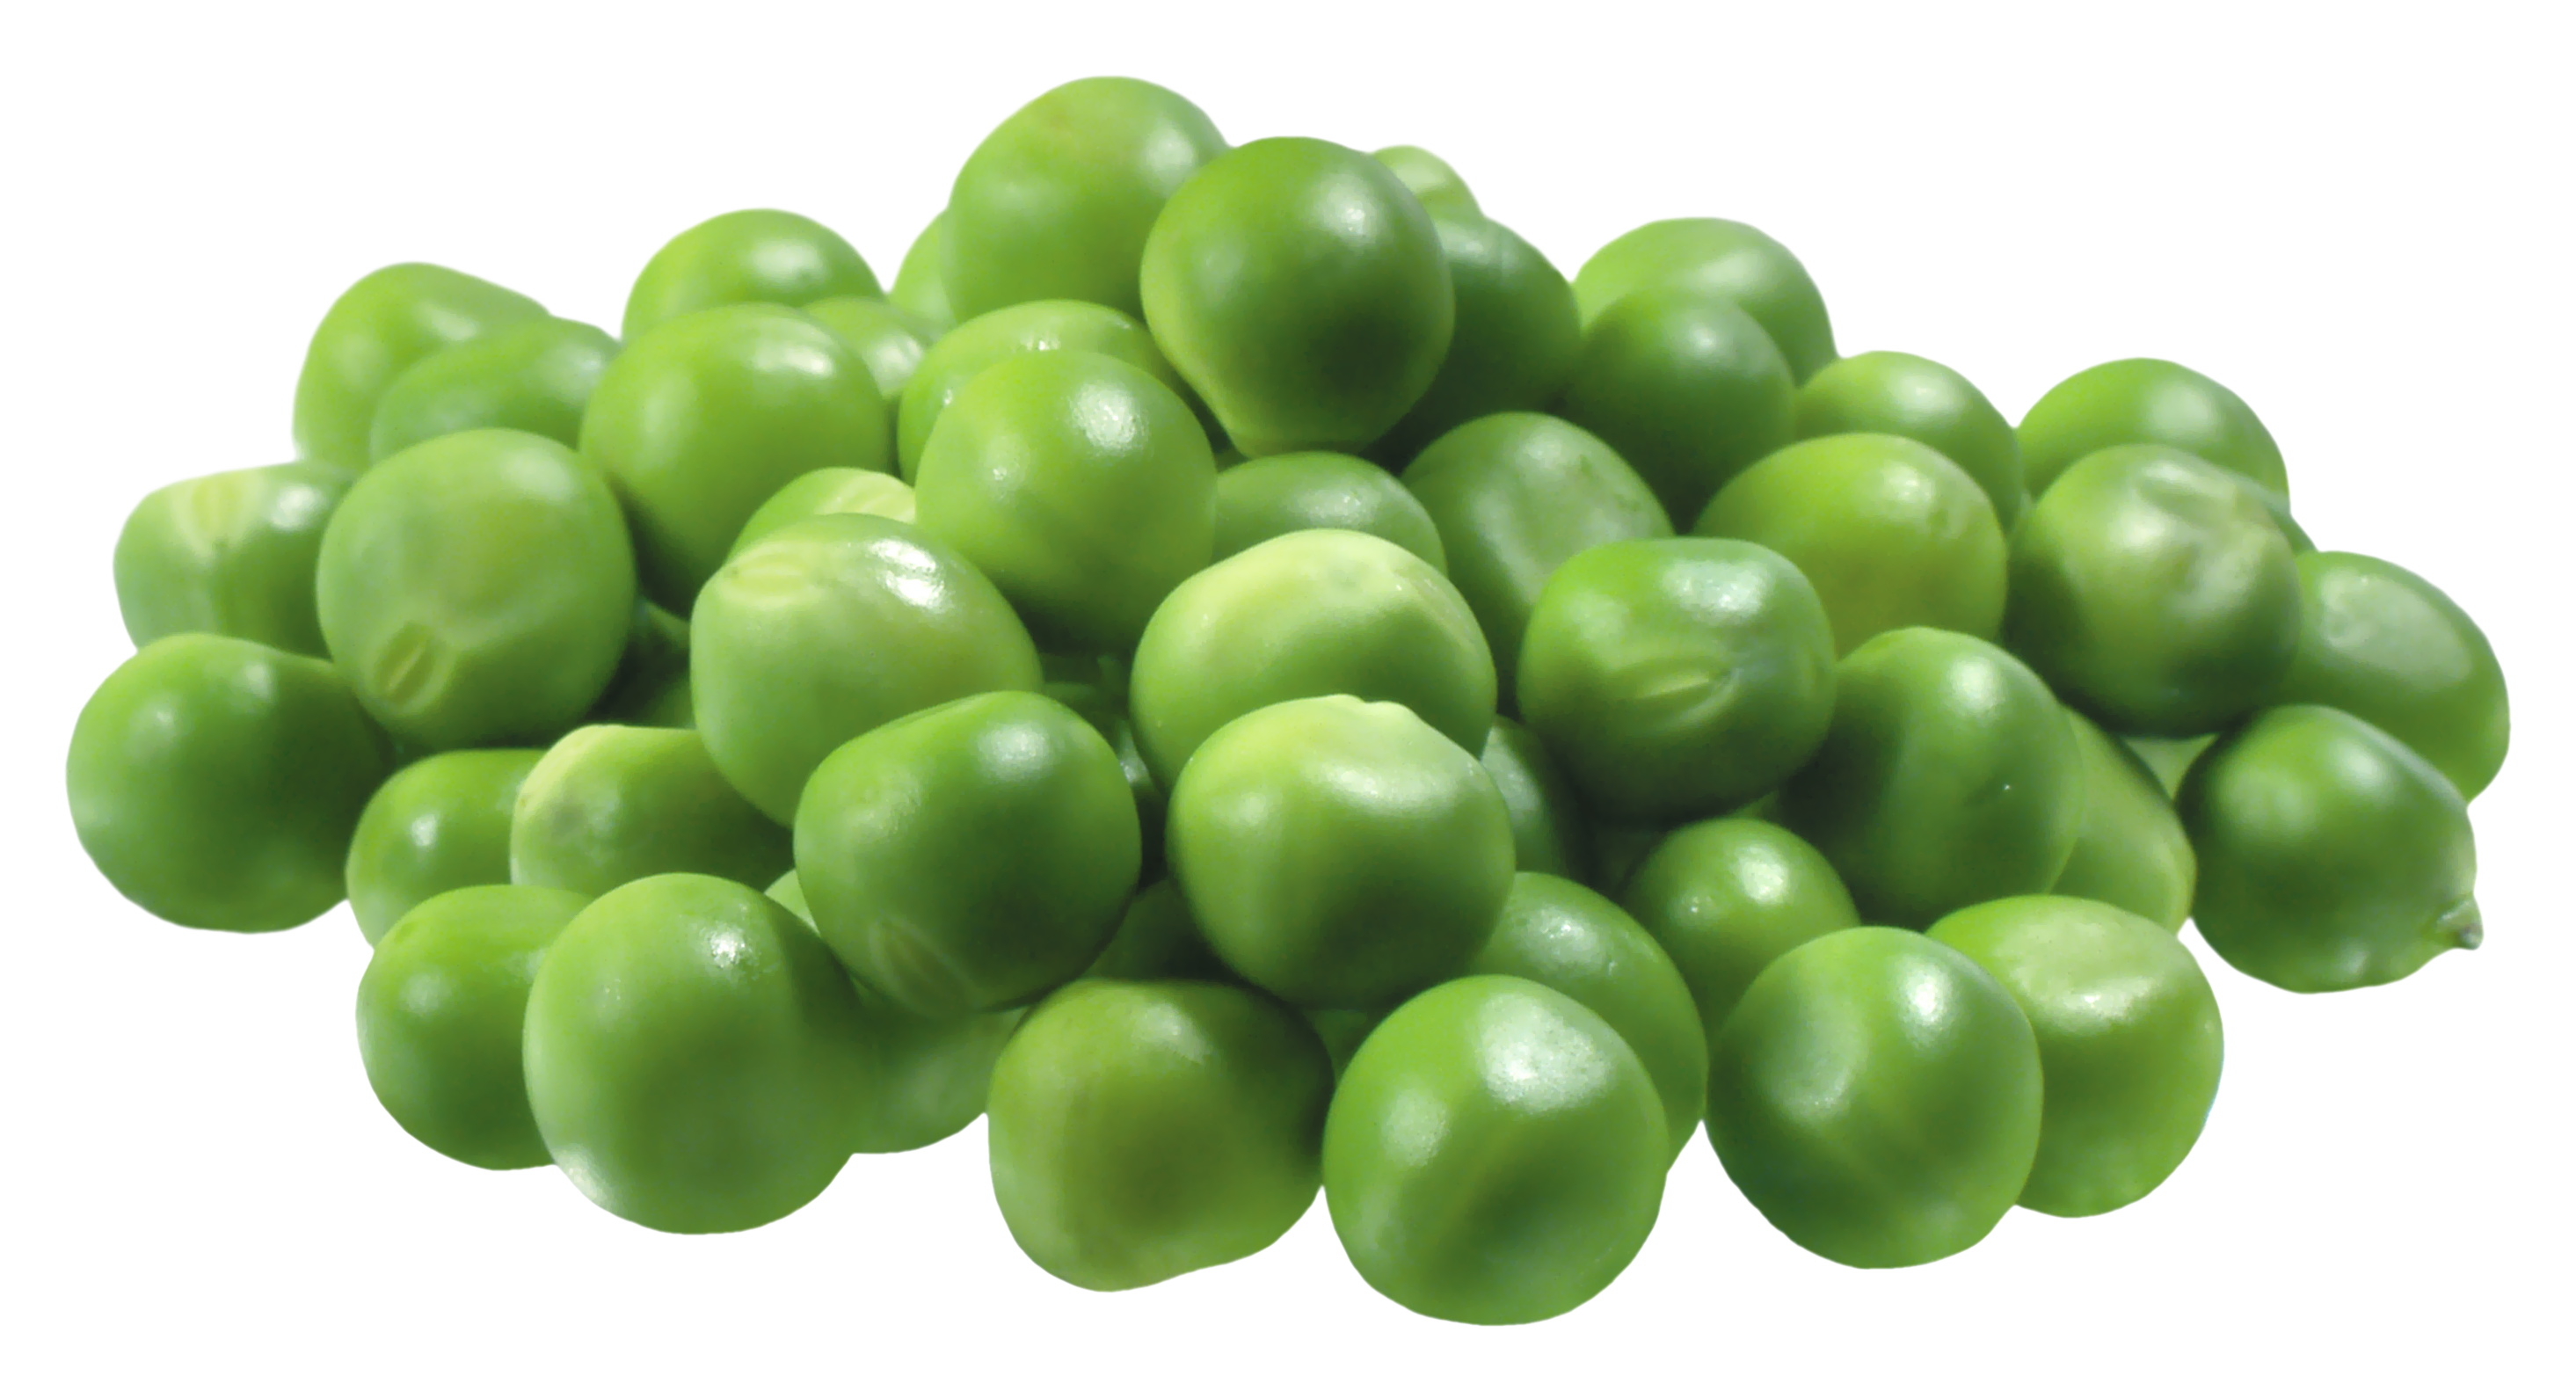 Vegetables clipart pea. Png picture gallery yopriceville